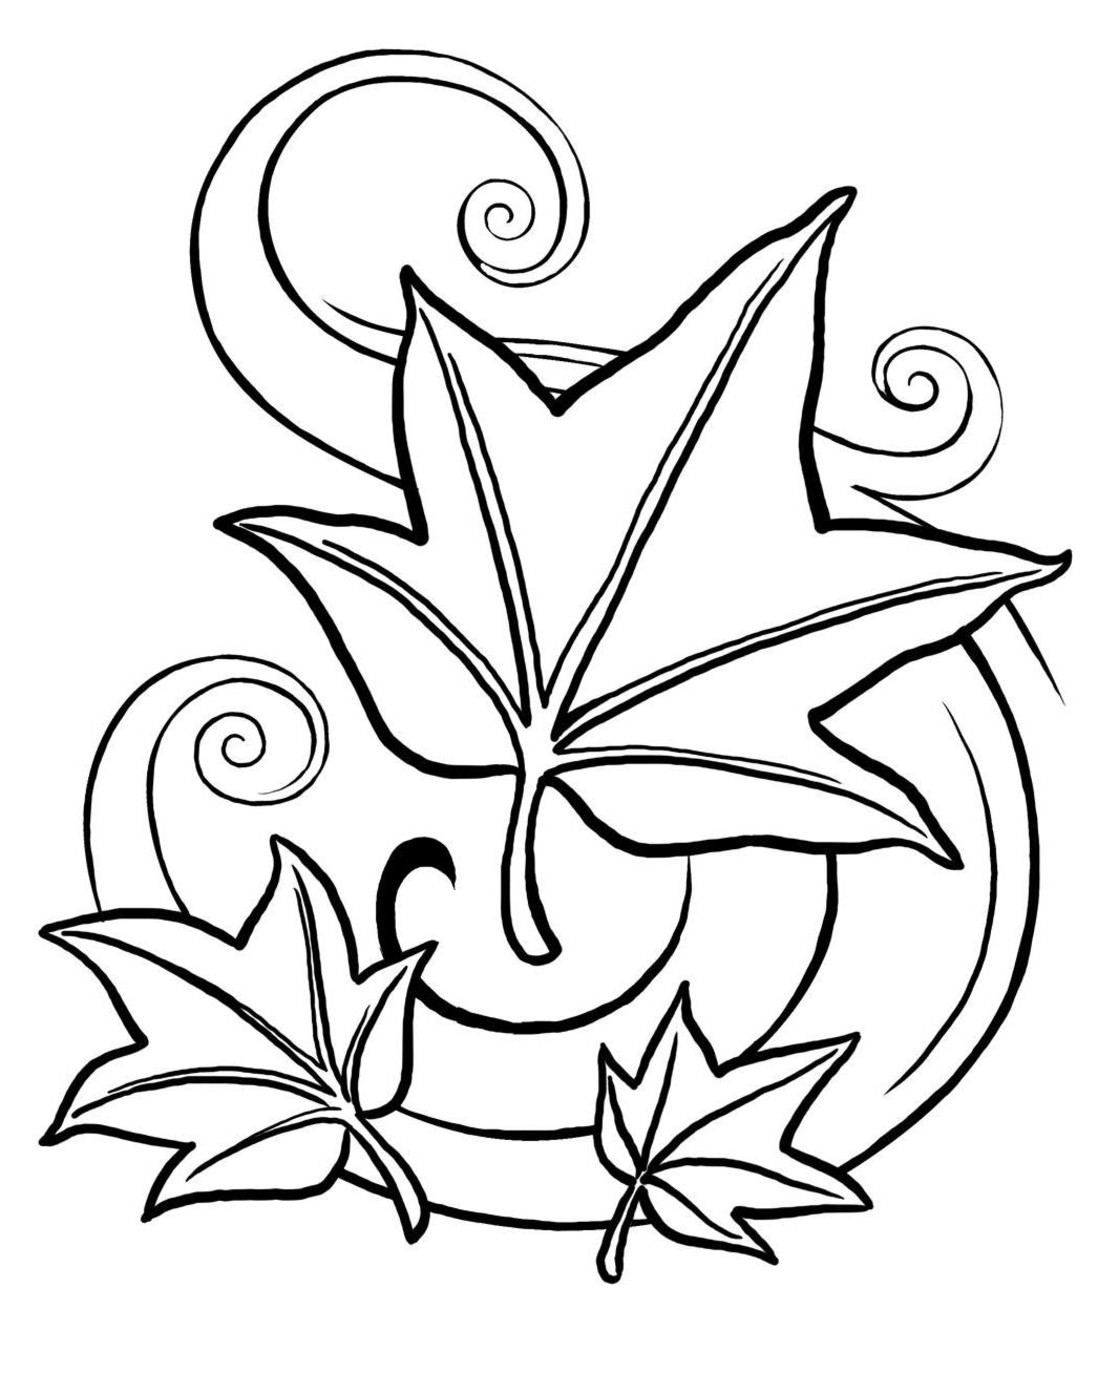 Fall leaves coloring pages clipart panda free clipart for Coloring page of leaves